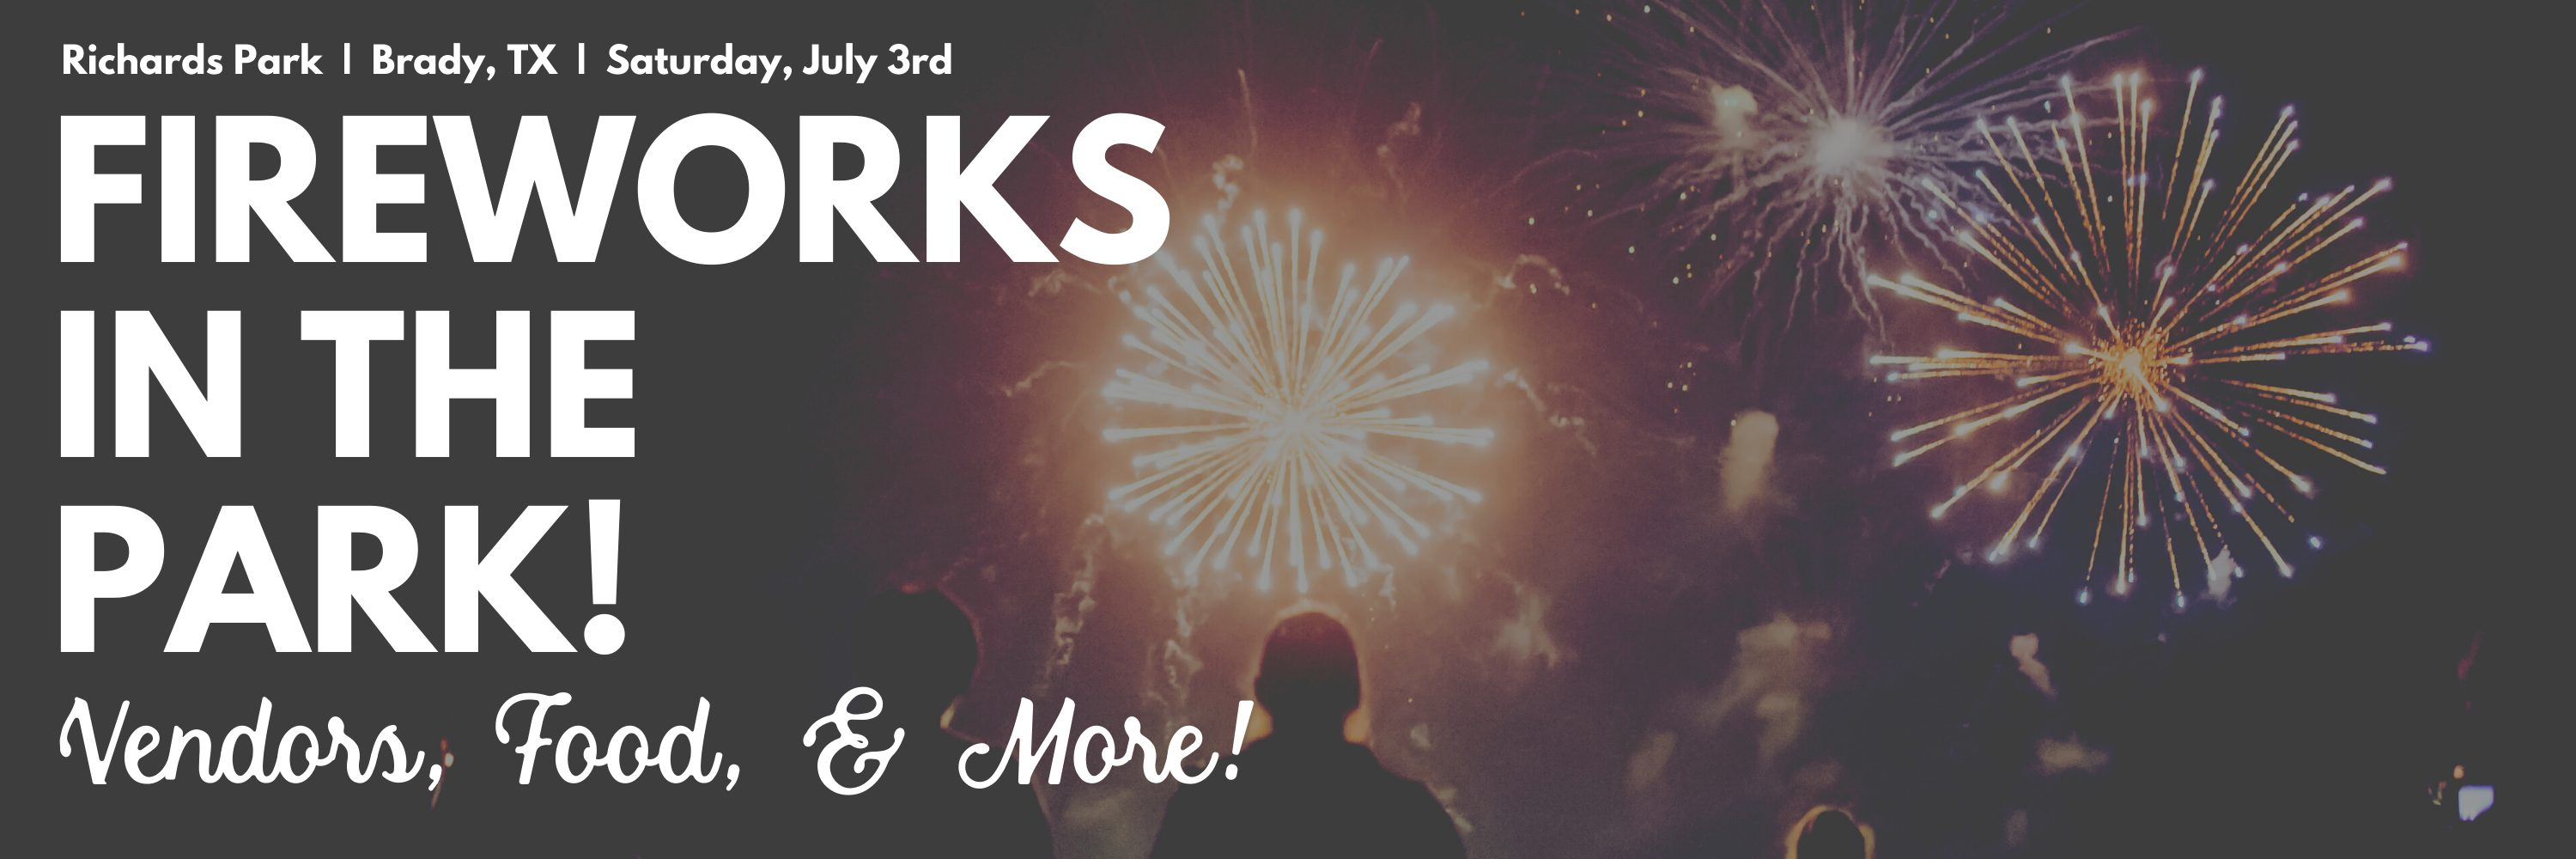 Fireworks Photo Fourth of July Facebook Post-3